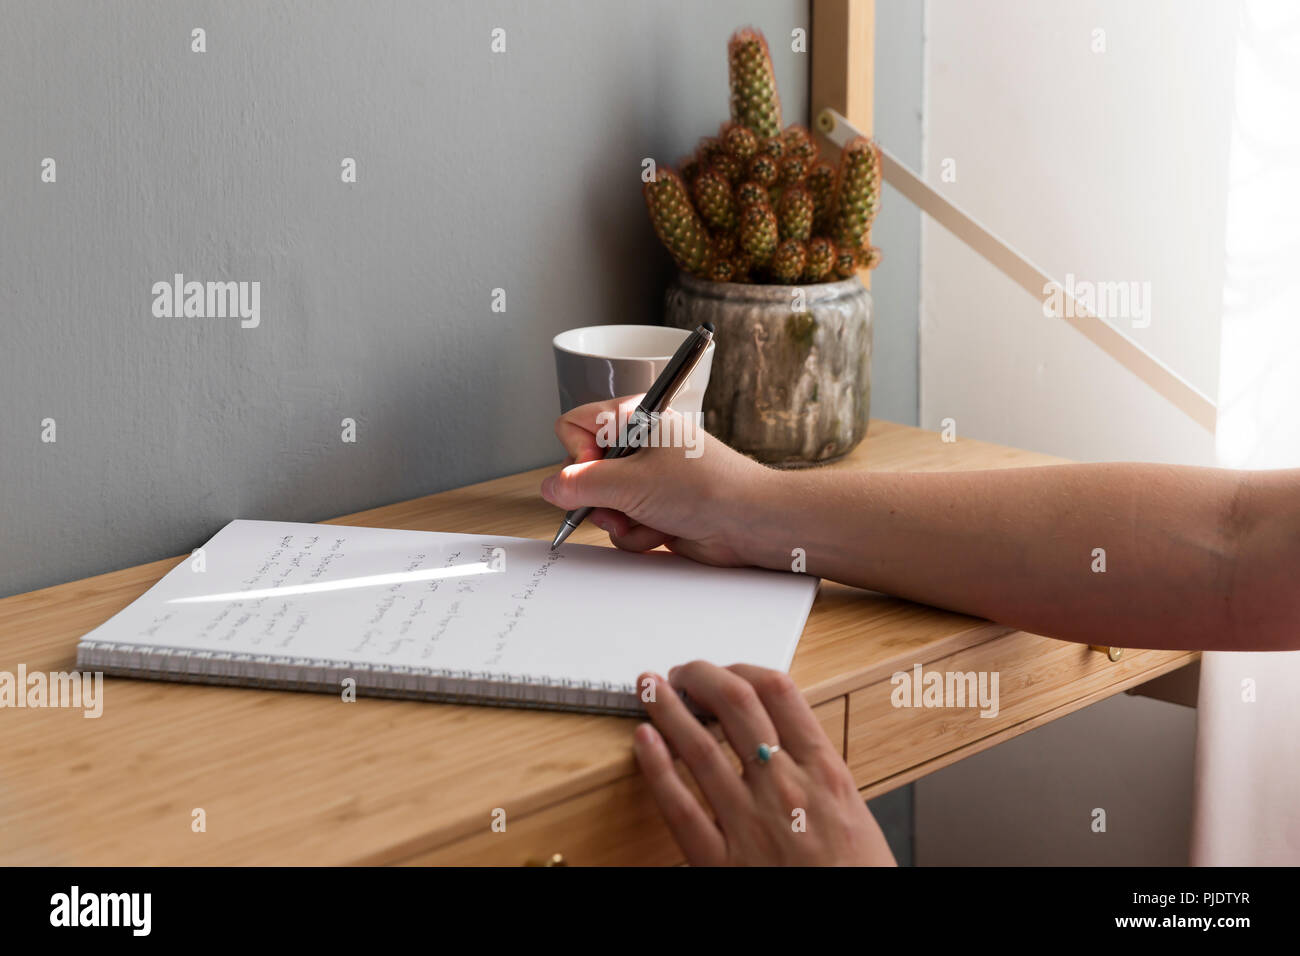 Light slicing perfectly onto girl writing in notebook. - Stock Image